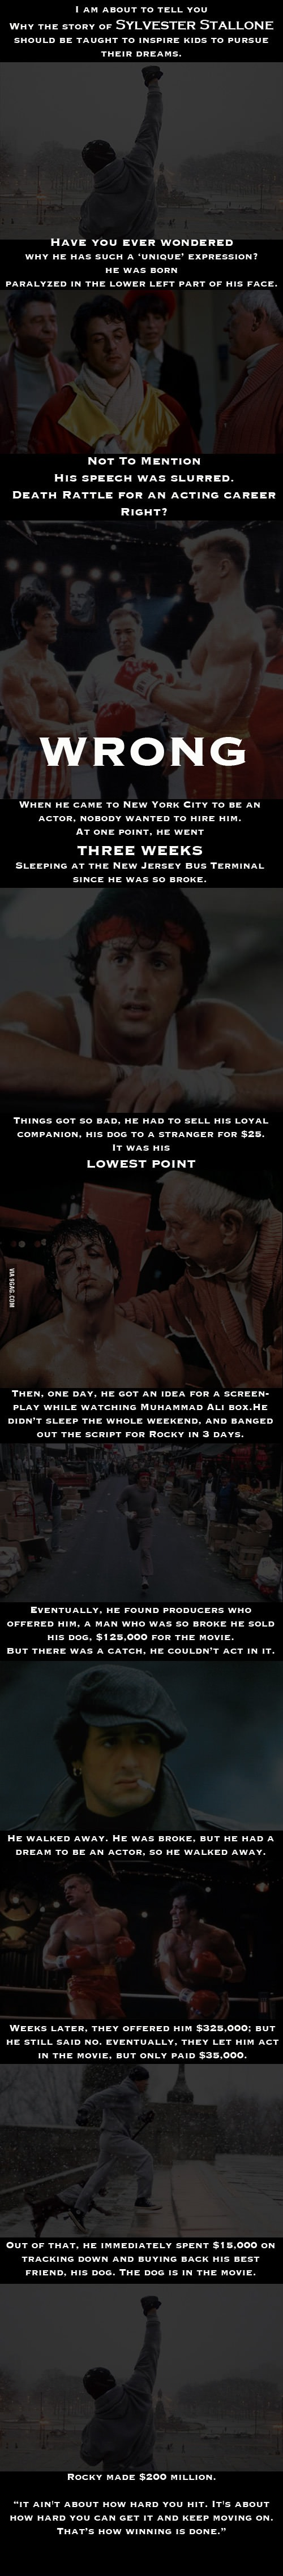 Sylvester Stallone's story should be told to everyone ever.